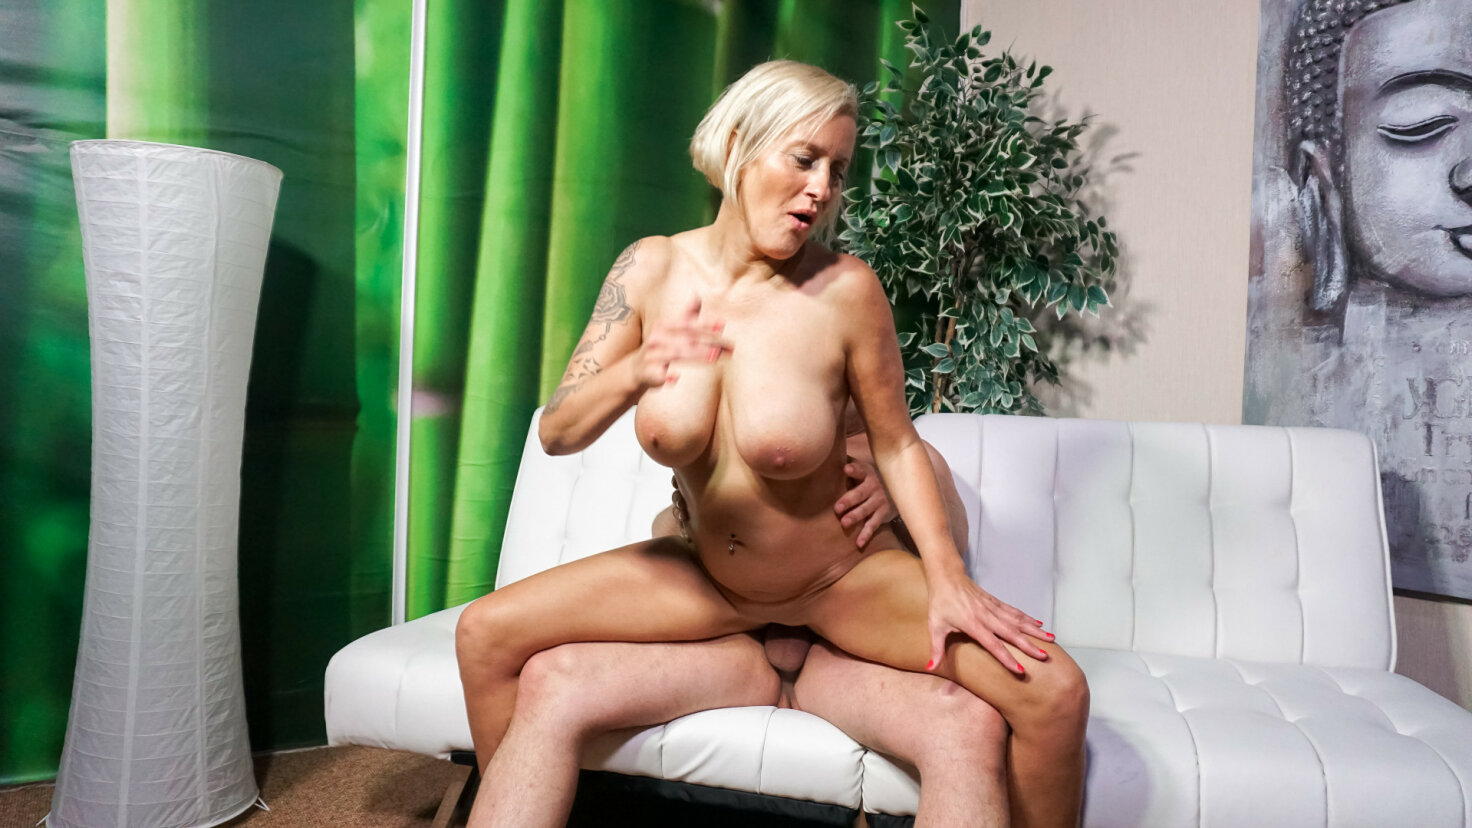 Badass German blonde in her 40s gives blowjob before sex in first time porn